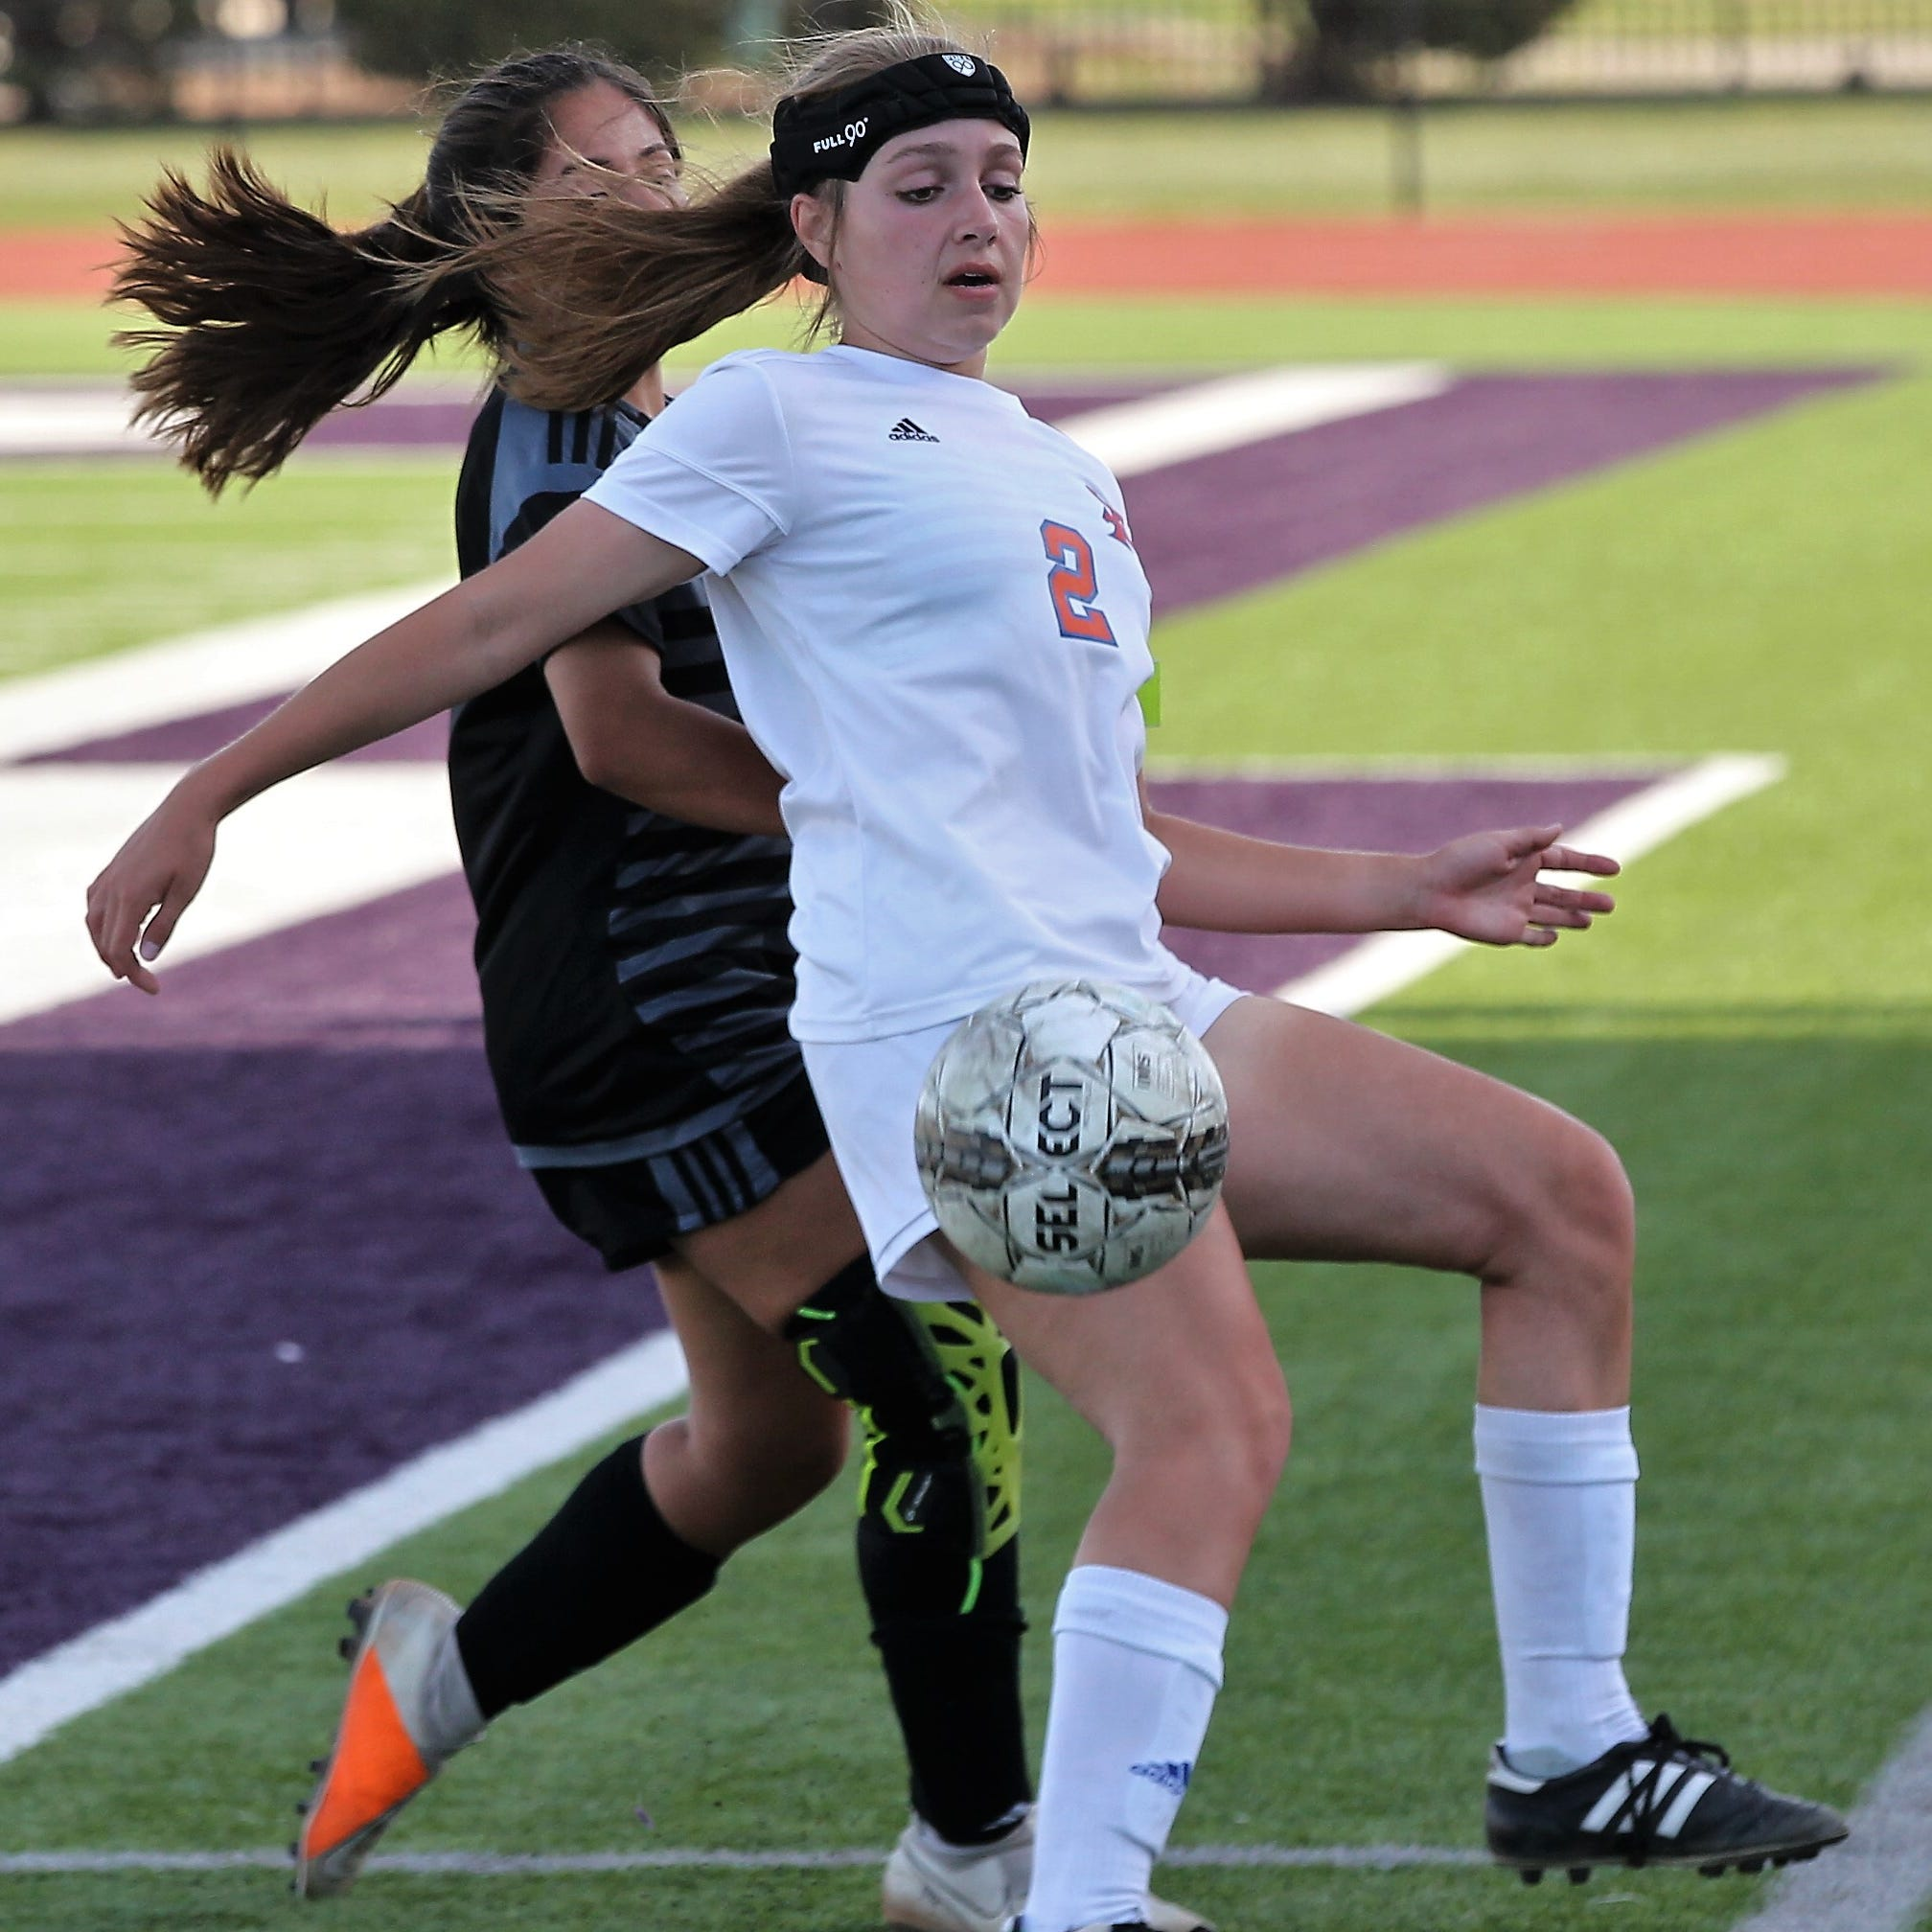 San Angelo Central girls soccer team edges Odessa Permian in playoff shootout